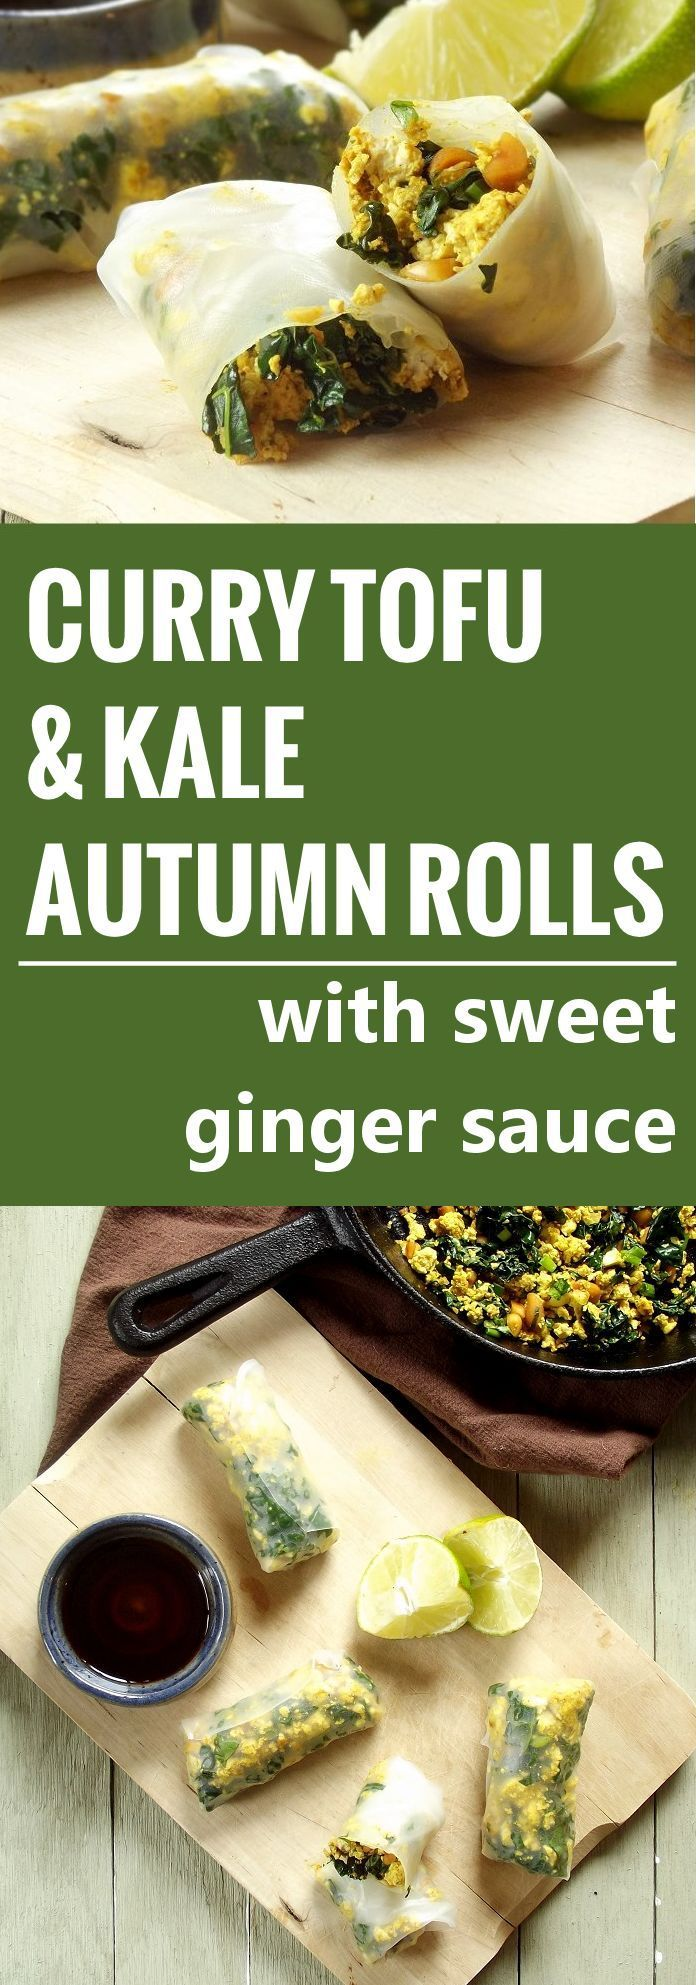 These autumn rolls are made with rice paper wrappers stuffed with curried scrambled tofu, kale and peanuts, and served with a zesty sweet ginger sauce.